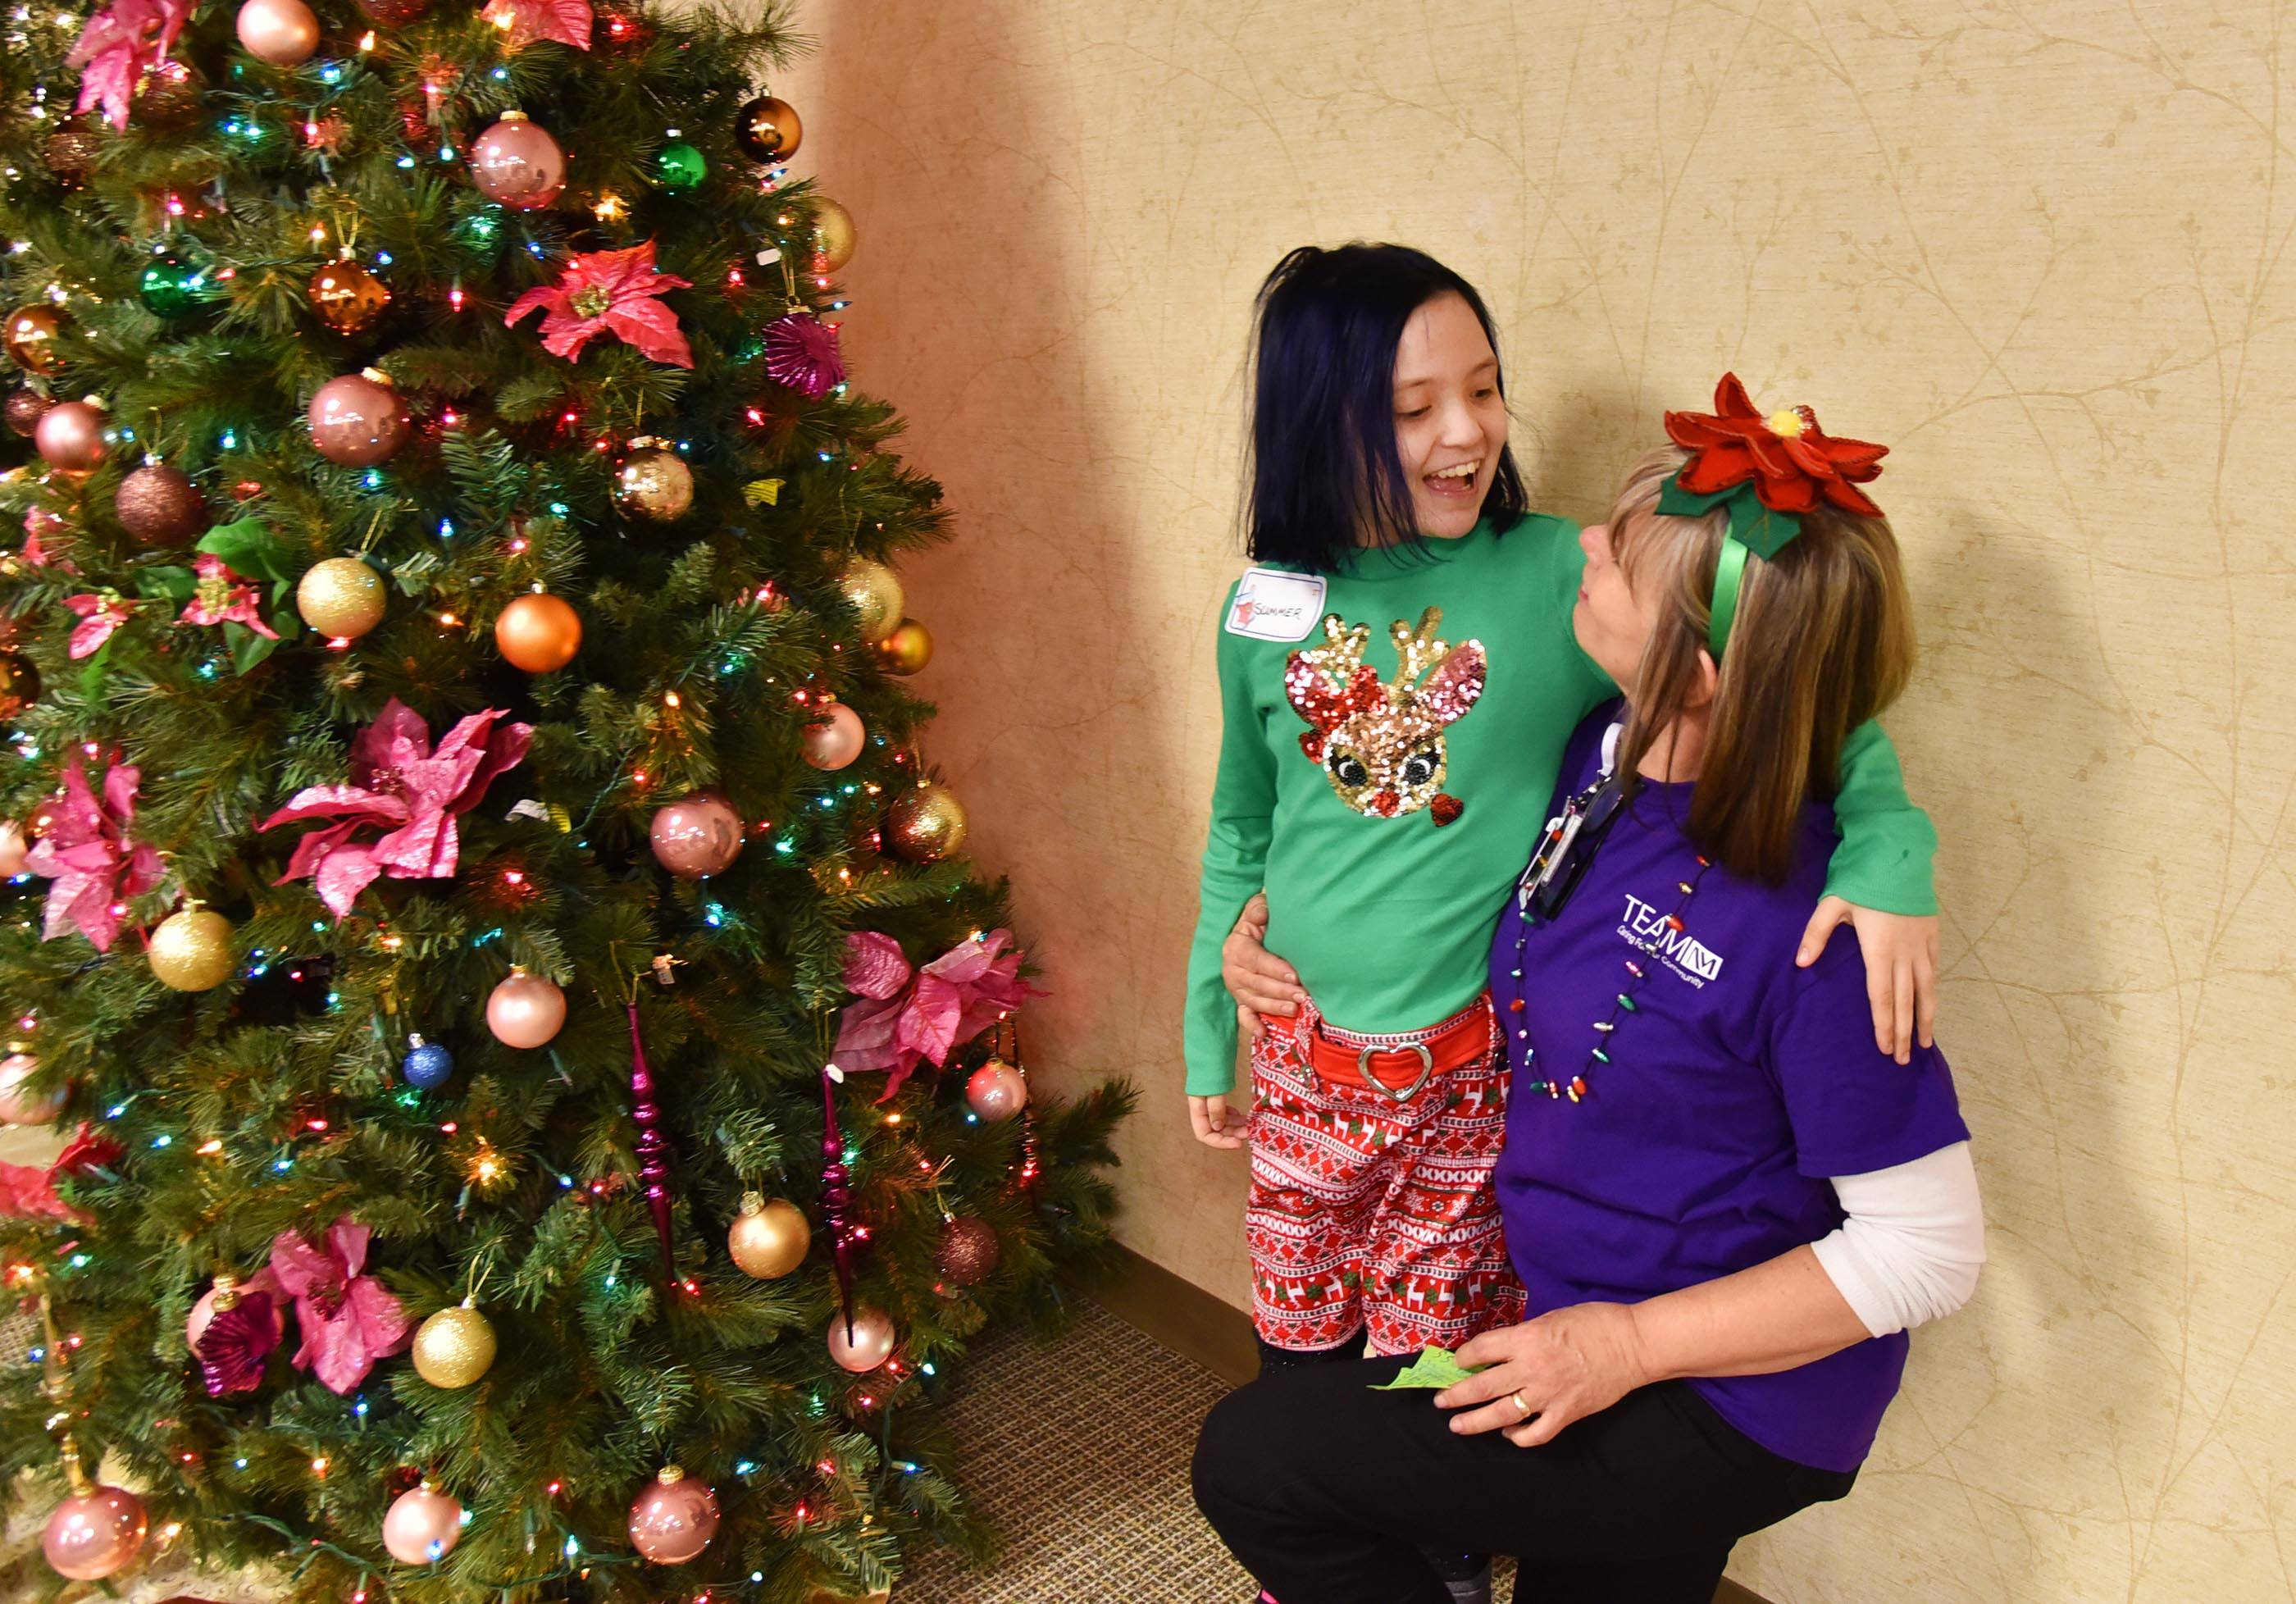 Summer Chylewski, 10, of Lombard visits with physical therapist Ginny Girton Saturday at the Marianjoy Rehabilitation Hospital in Wheaton.